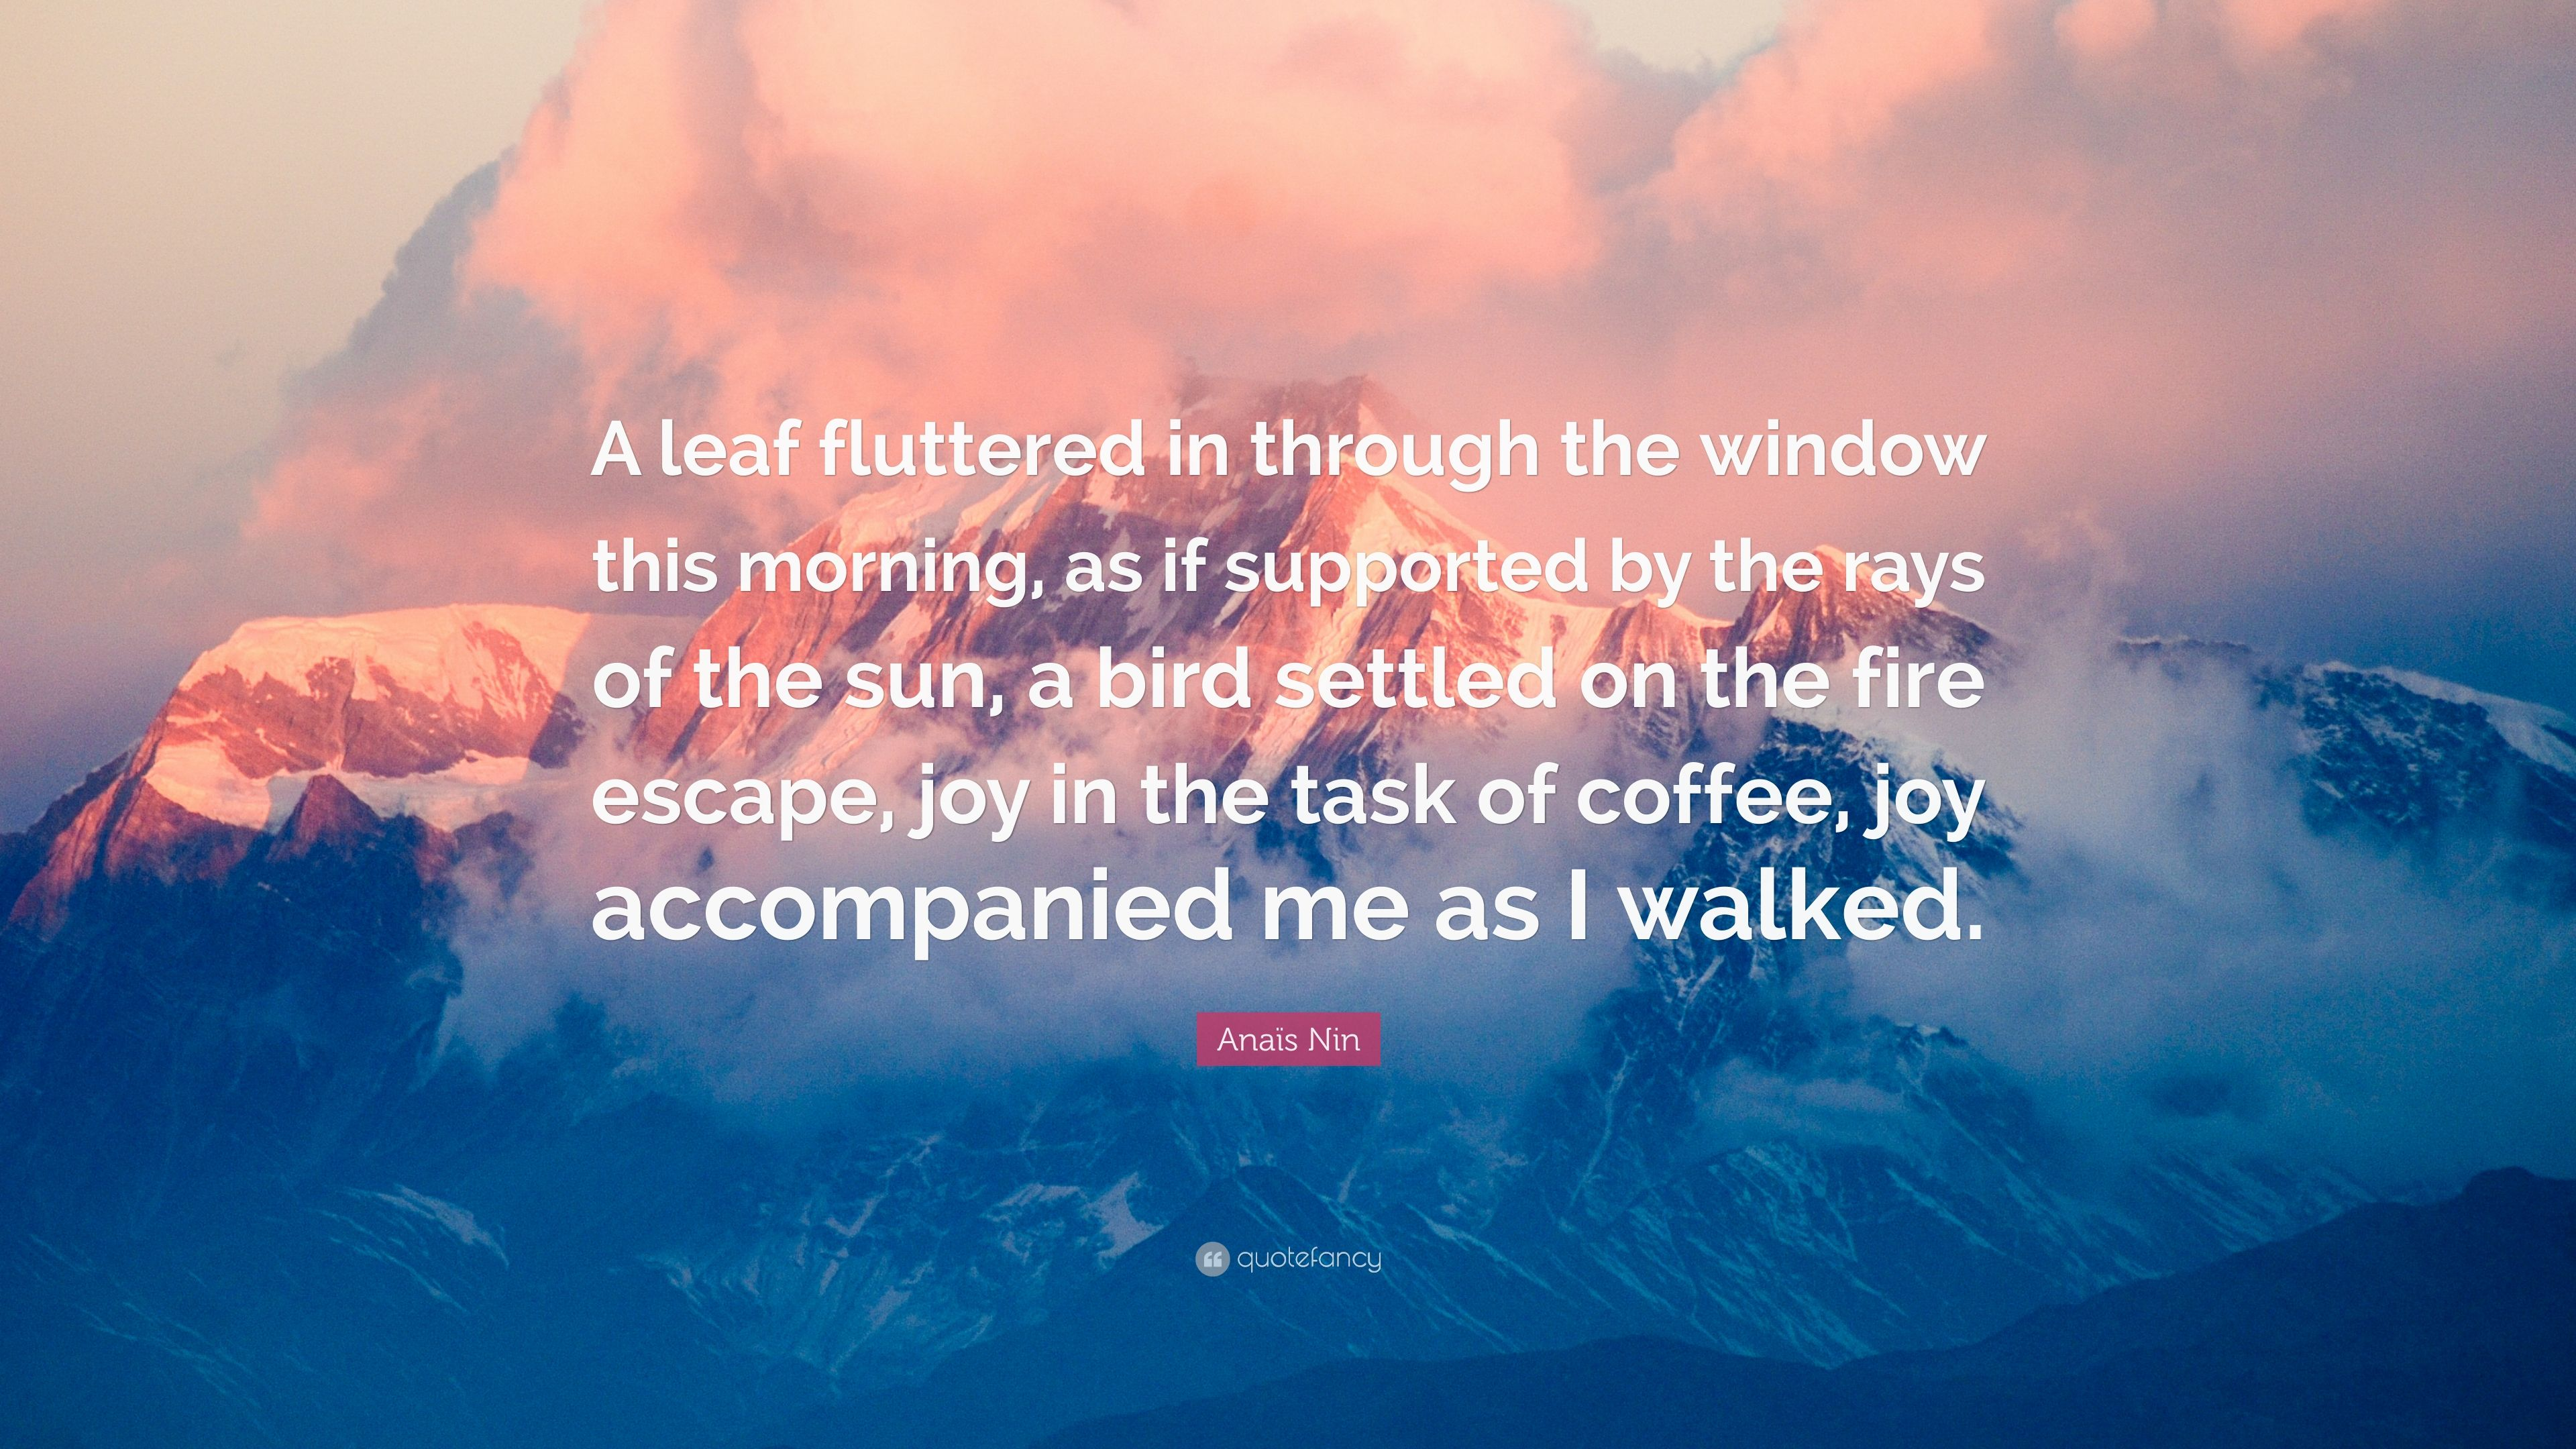 Anaïs Nin Quote: U201cA Leaf Fluttered In Through The Window This Morning, As